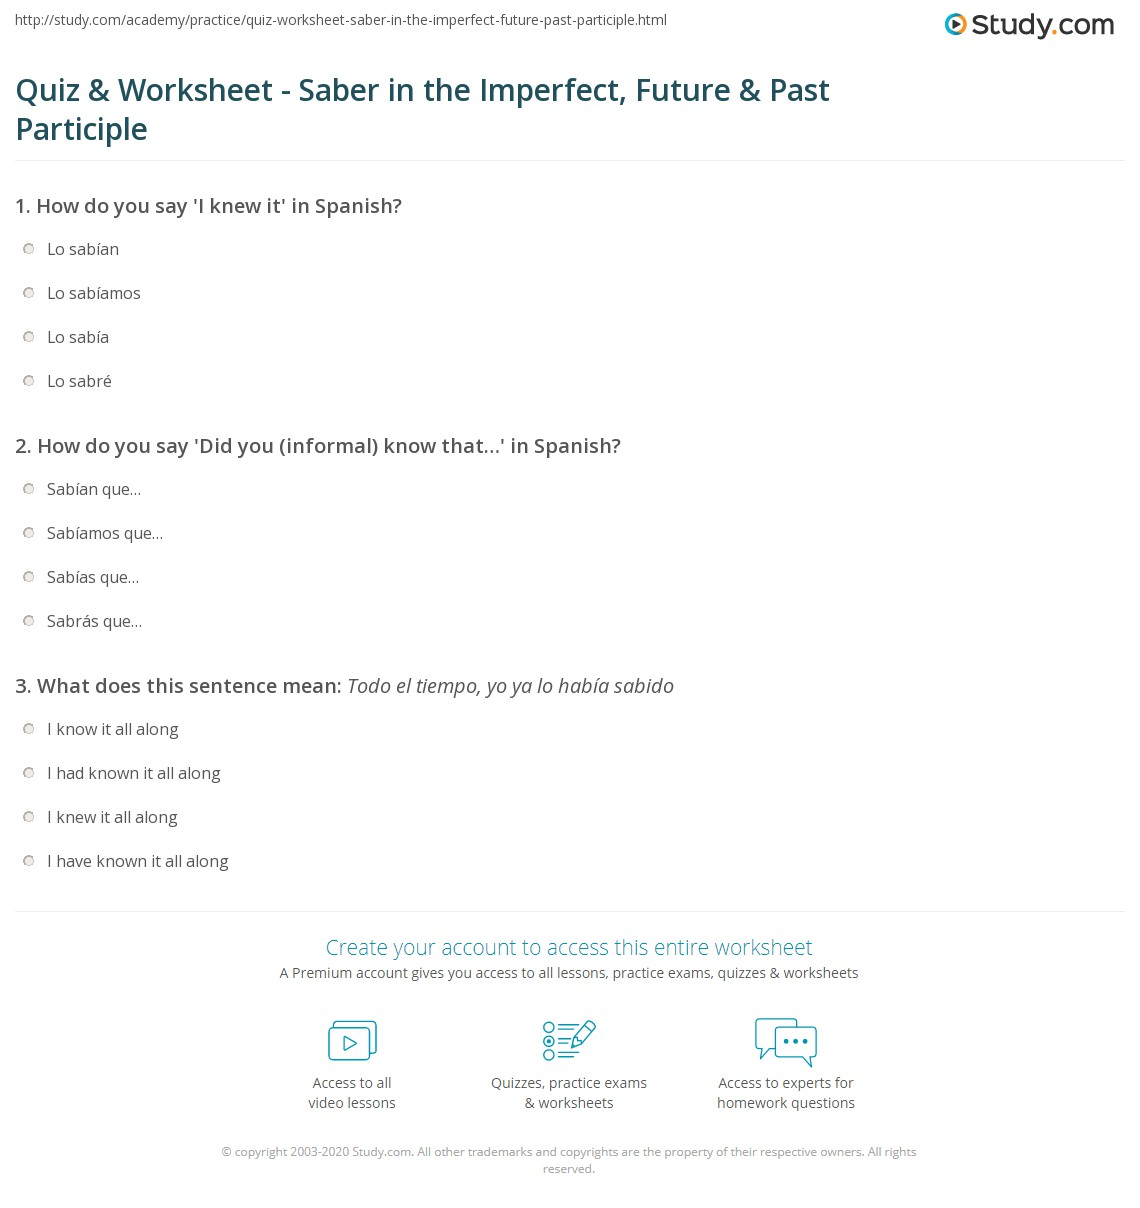 Quiz Worksheet Saber In The Imperfect Future Past Participle Study Com